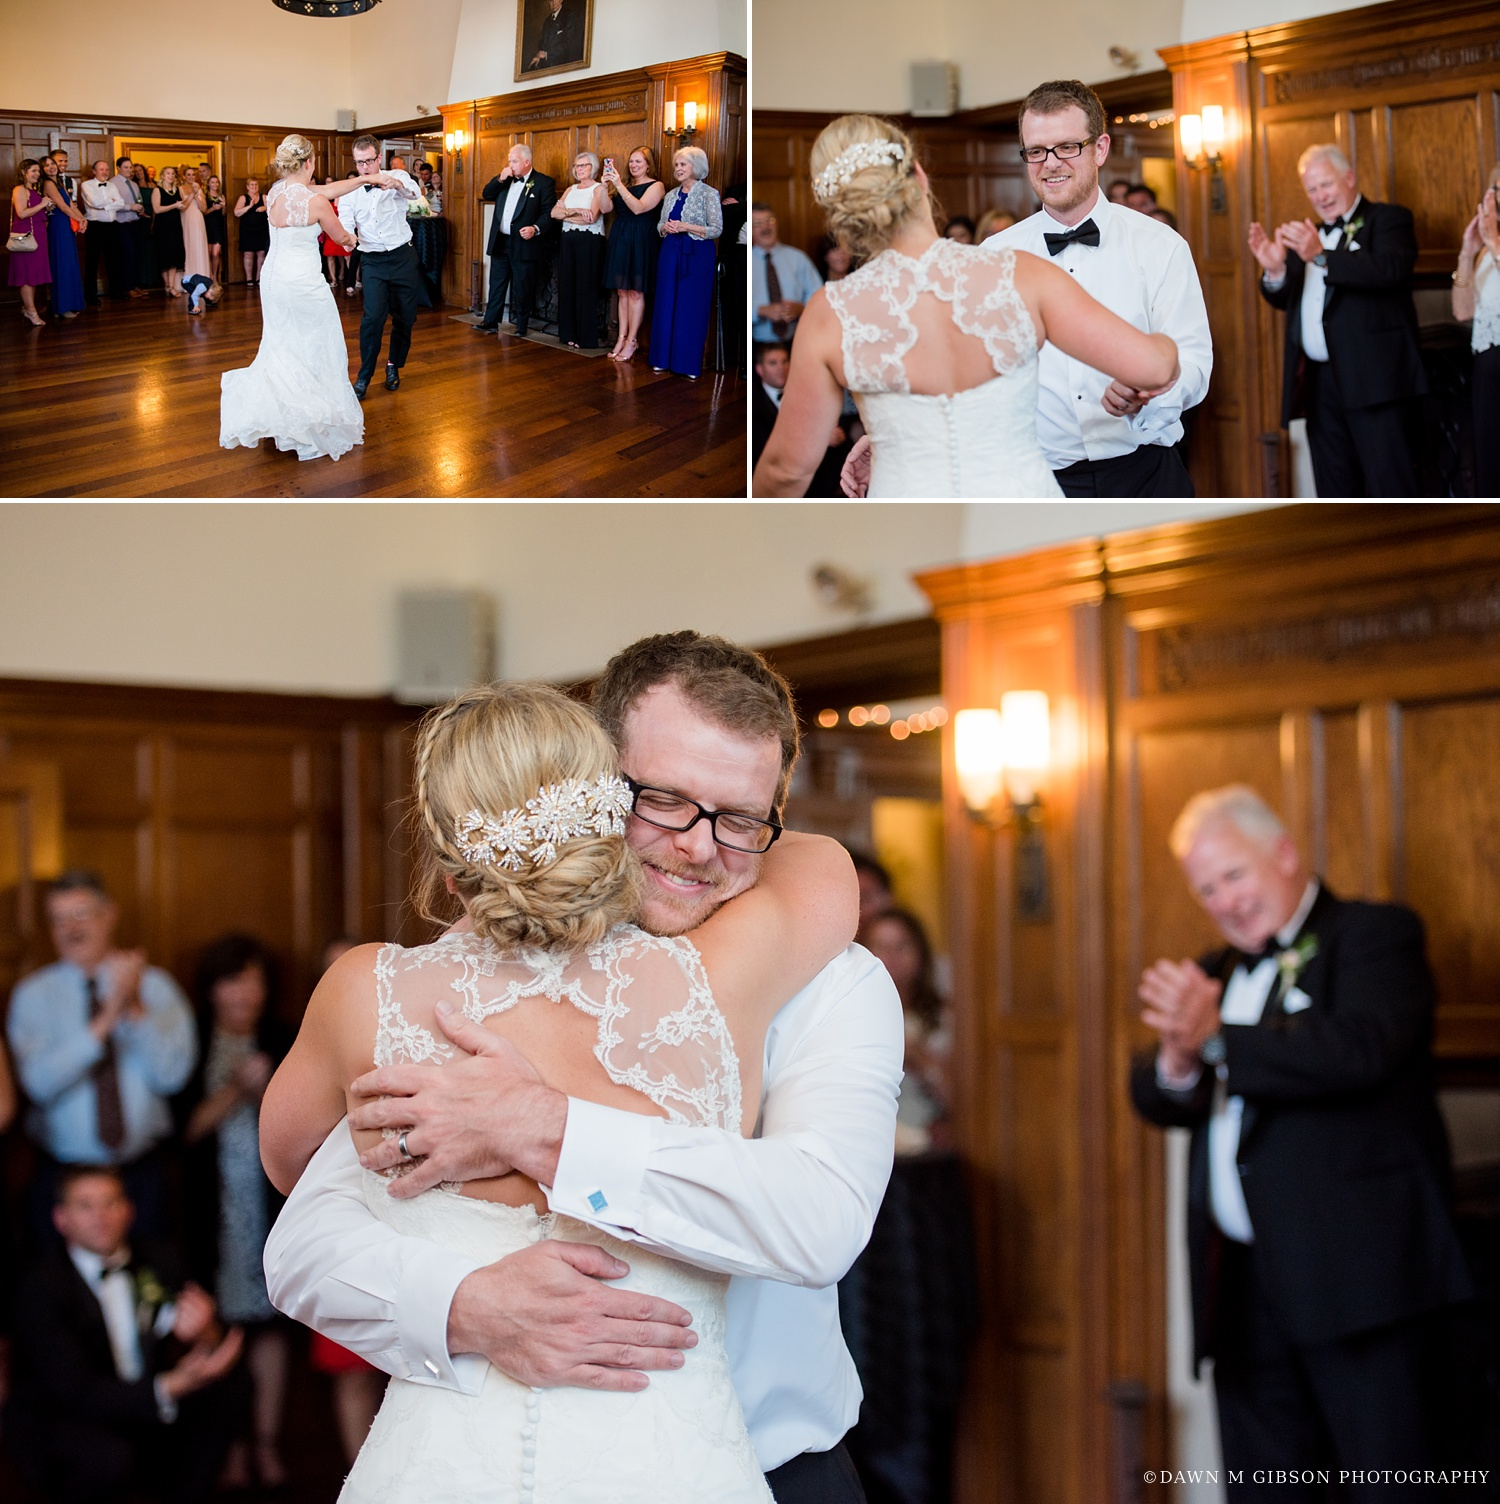 buffalo_wny_rochester_wedding_photographer_dawnmgibsonphotography_strathallan_colgate_rochester_divinity_rochester_wedding_venues_0083.jpg